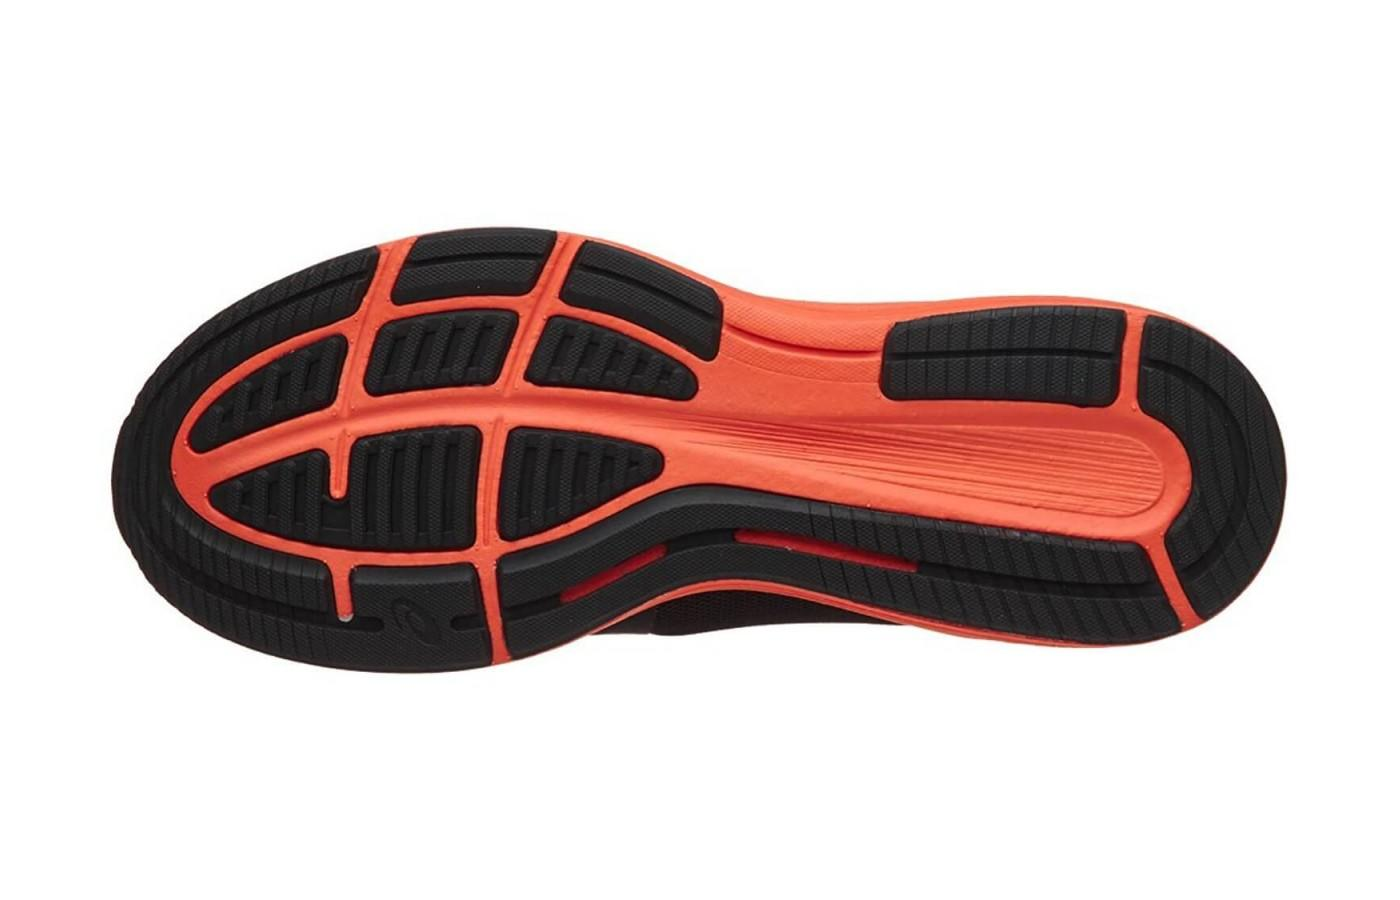 a look at the outsole of the asics roadhawk ff